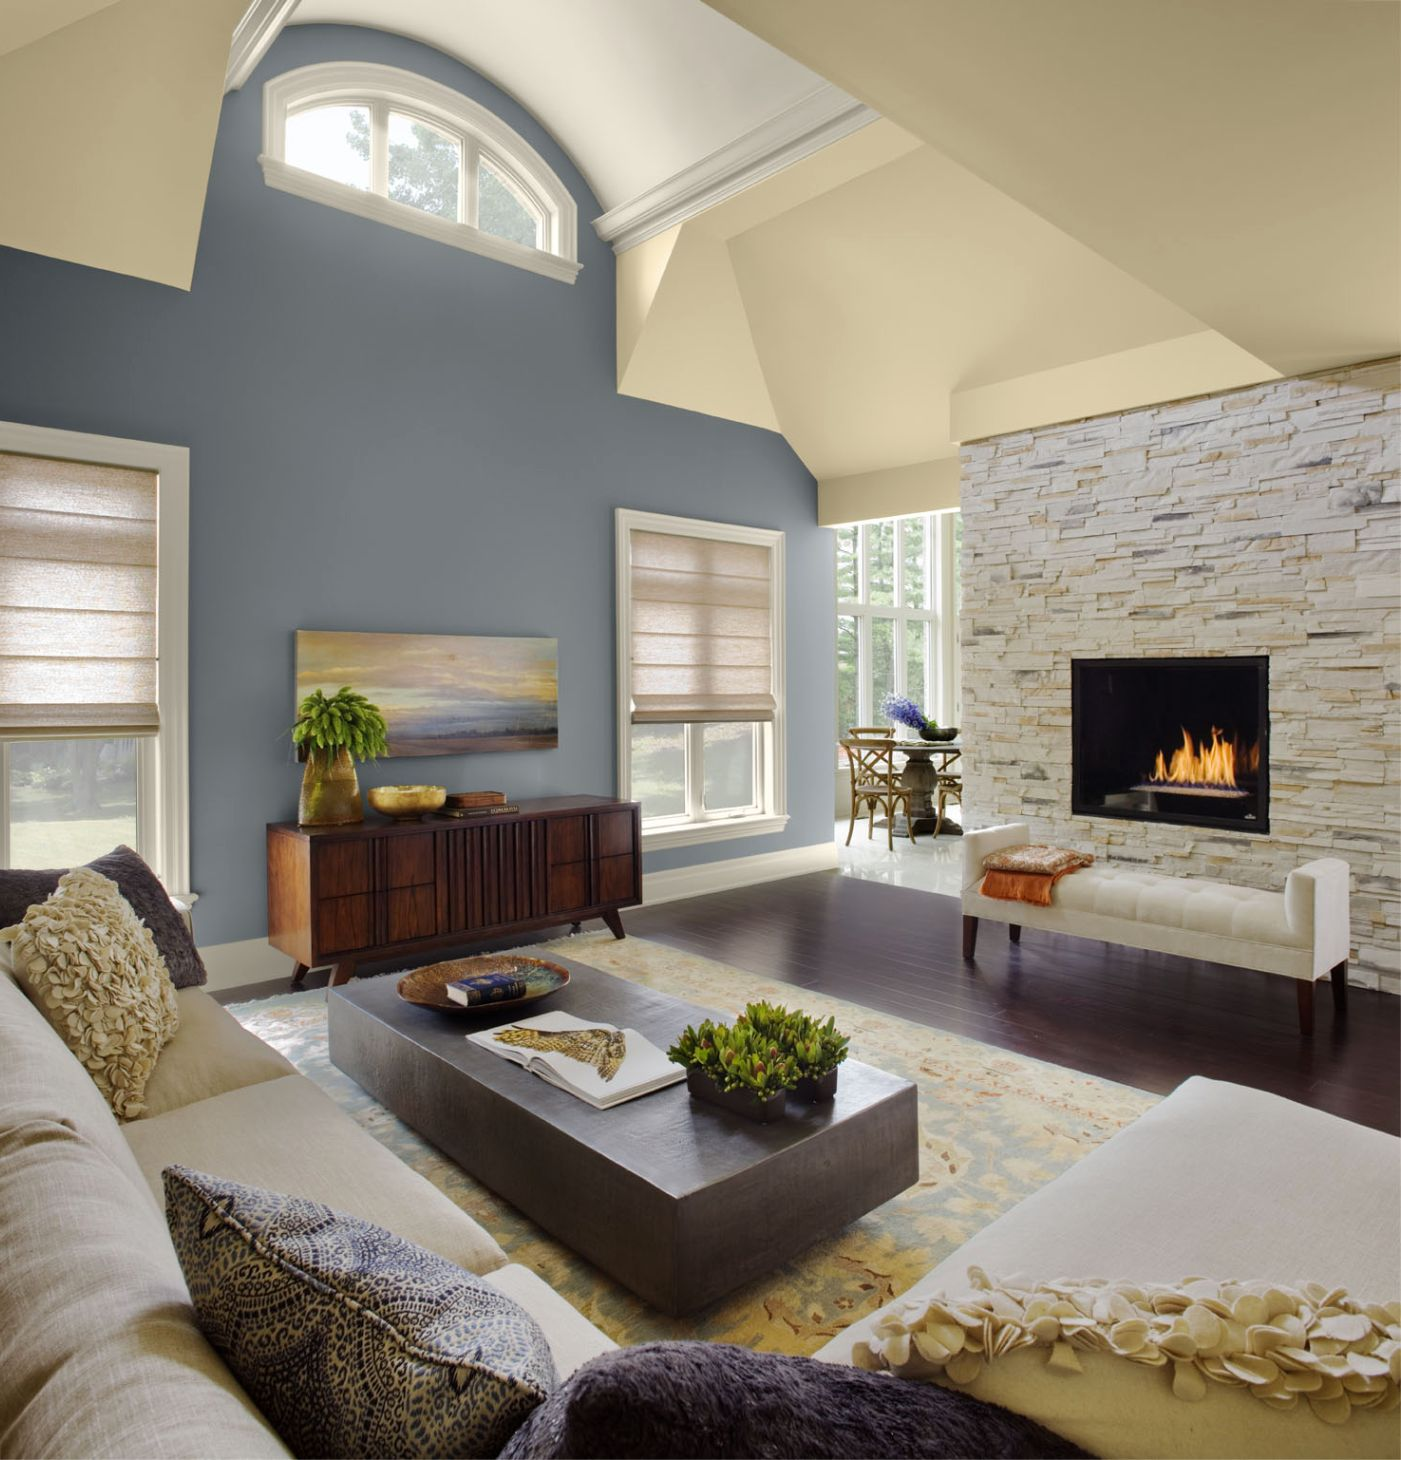 Homes Ideas: 16 Most Fabulous Vaulted Ceiling Decorating Ideas